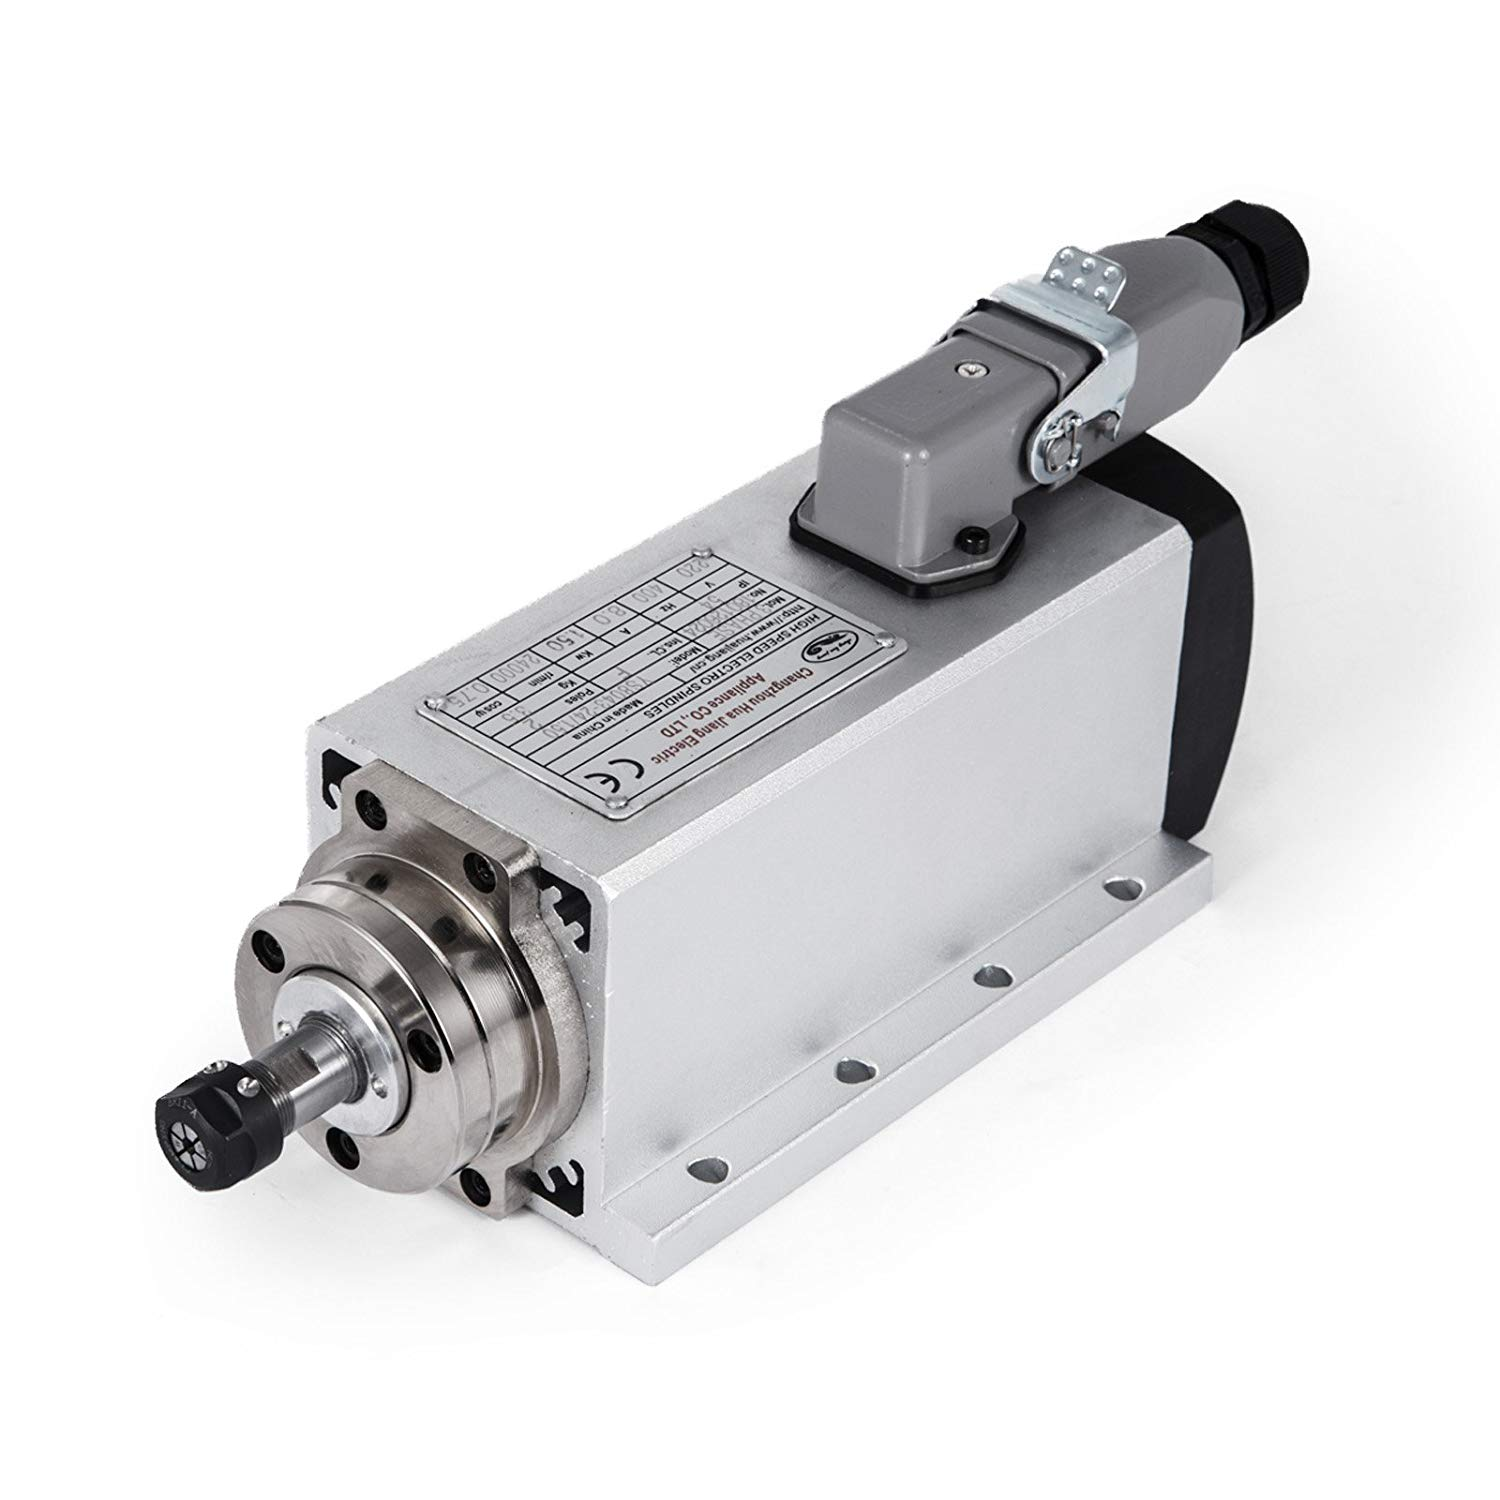 Mophorn Spindle Motor 1.5KW Square Air Cooled Spindle Motor ER11 Collect 24000RPM 220V CNC Spindle Motor for CNC Router Engraving Milling Machine (1.5KW Air Cooled)